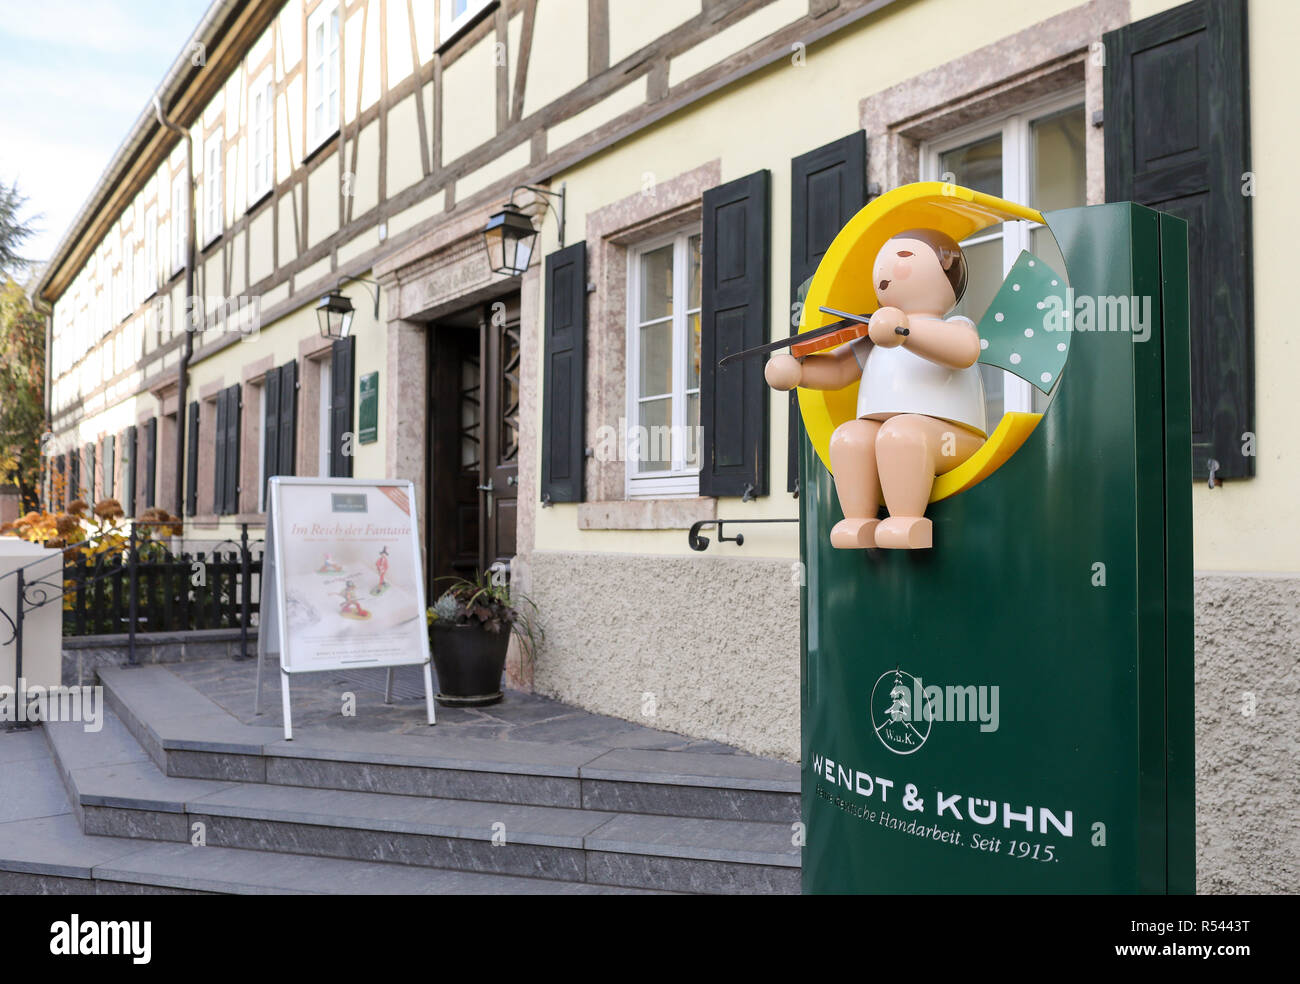 08 November 2018, Saxony, Grünhainichen: The headquarters of the Wendt&Kühn manufactory. Carving and the production of wooden toys are still an important branch of the economy in the Erzgebirge. The spectrum ranges from the classic two-man family business to large medium-sized companies. With almost 200 employees, Wendt&Kühn is one of the larger companies in the industry. Photo: Jan Woitas/dpa-Zentralbild/dpa - Stock Image